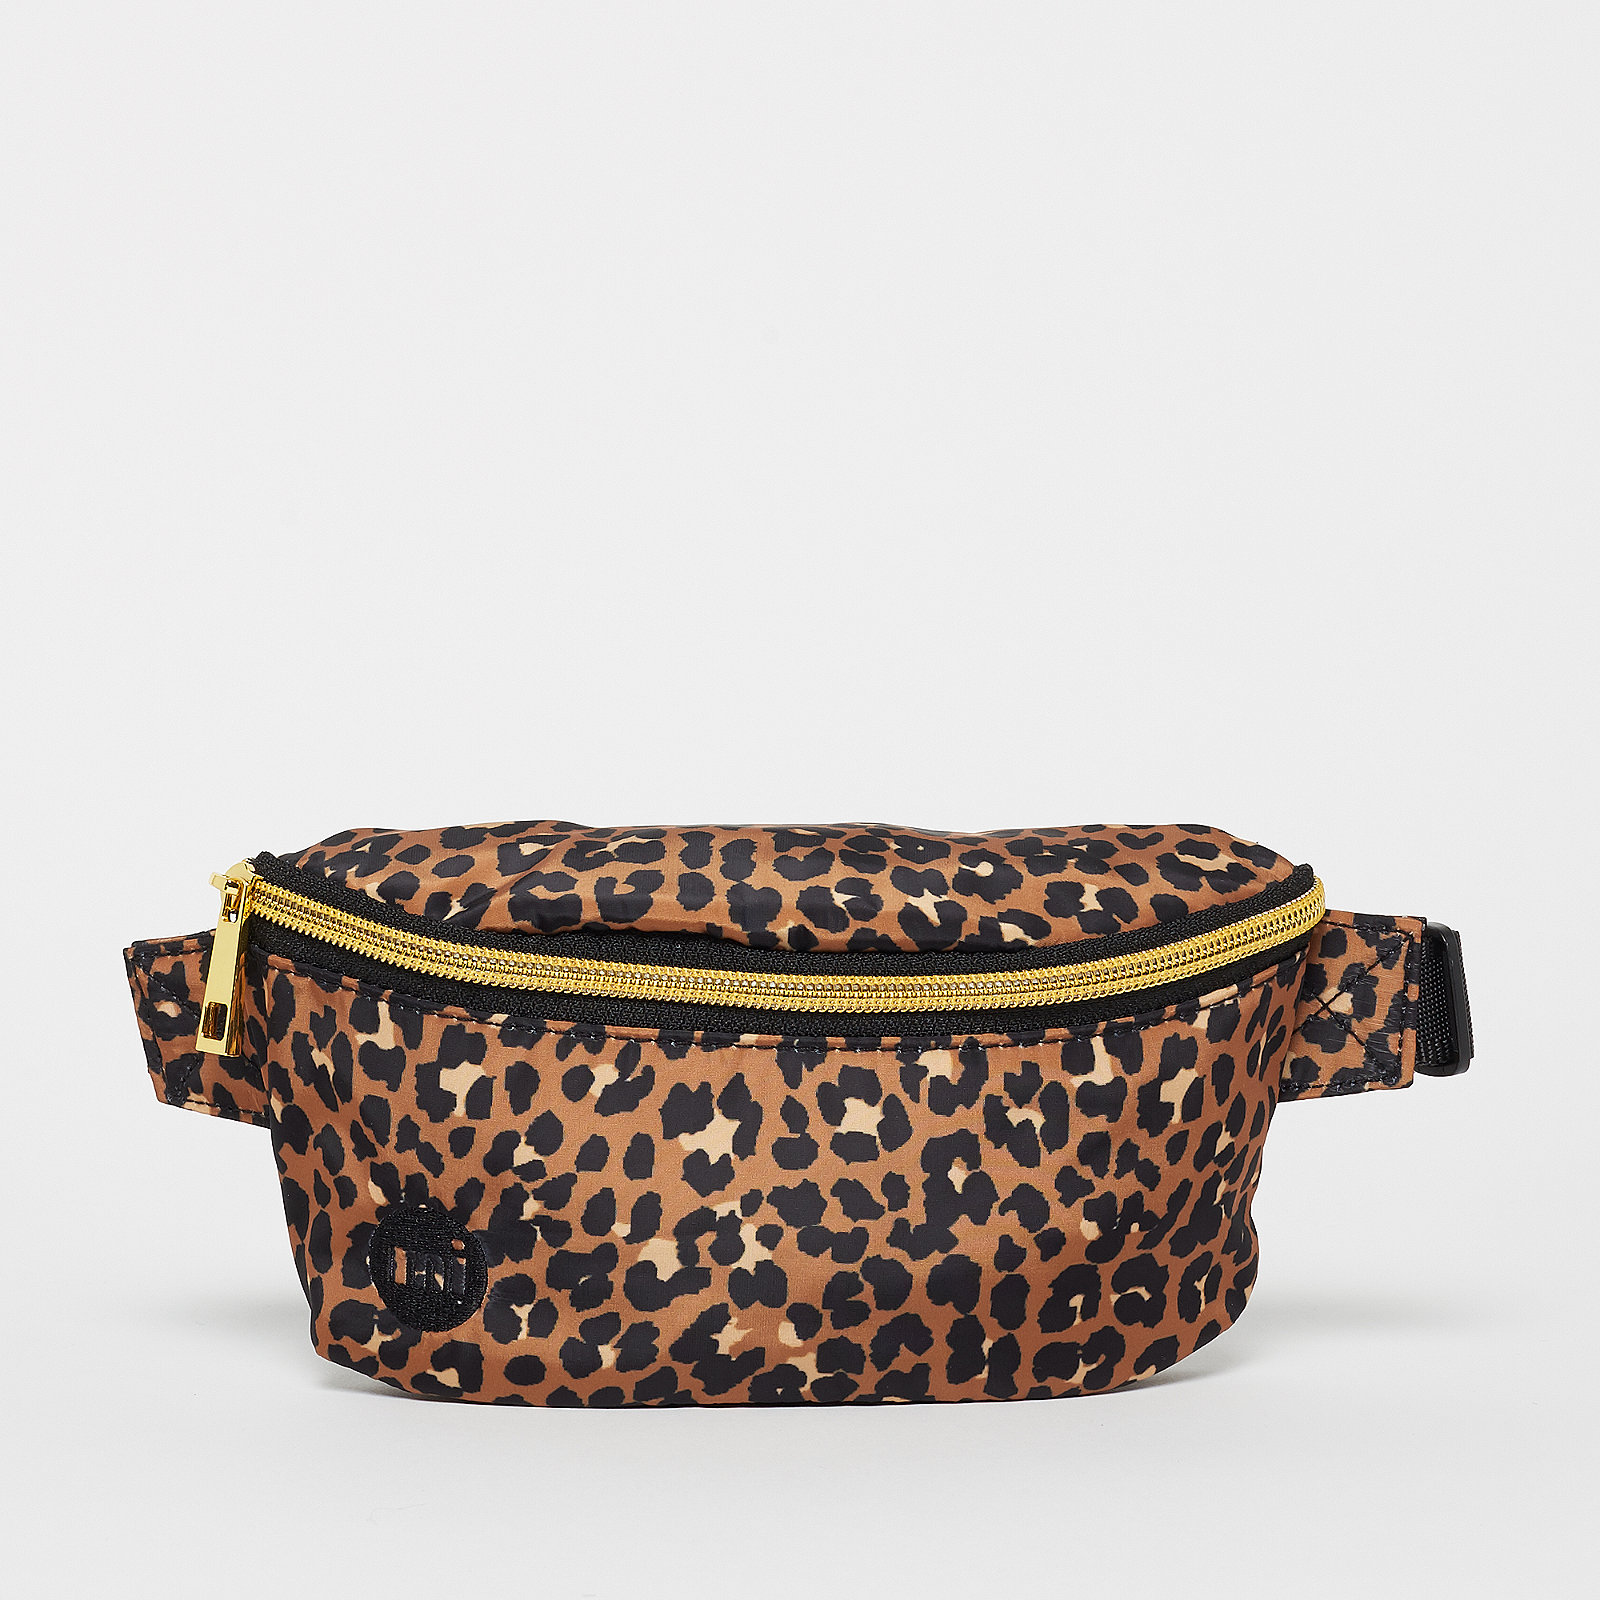 Mi-Pac Bum Bag Nylon Leopard